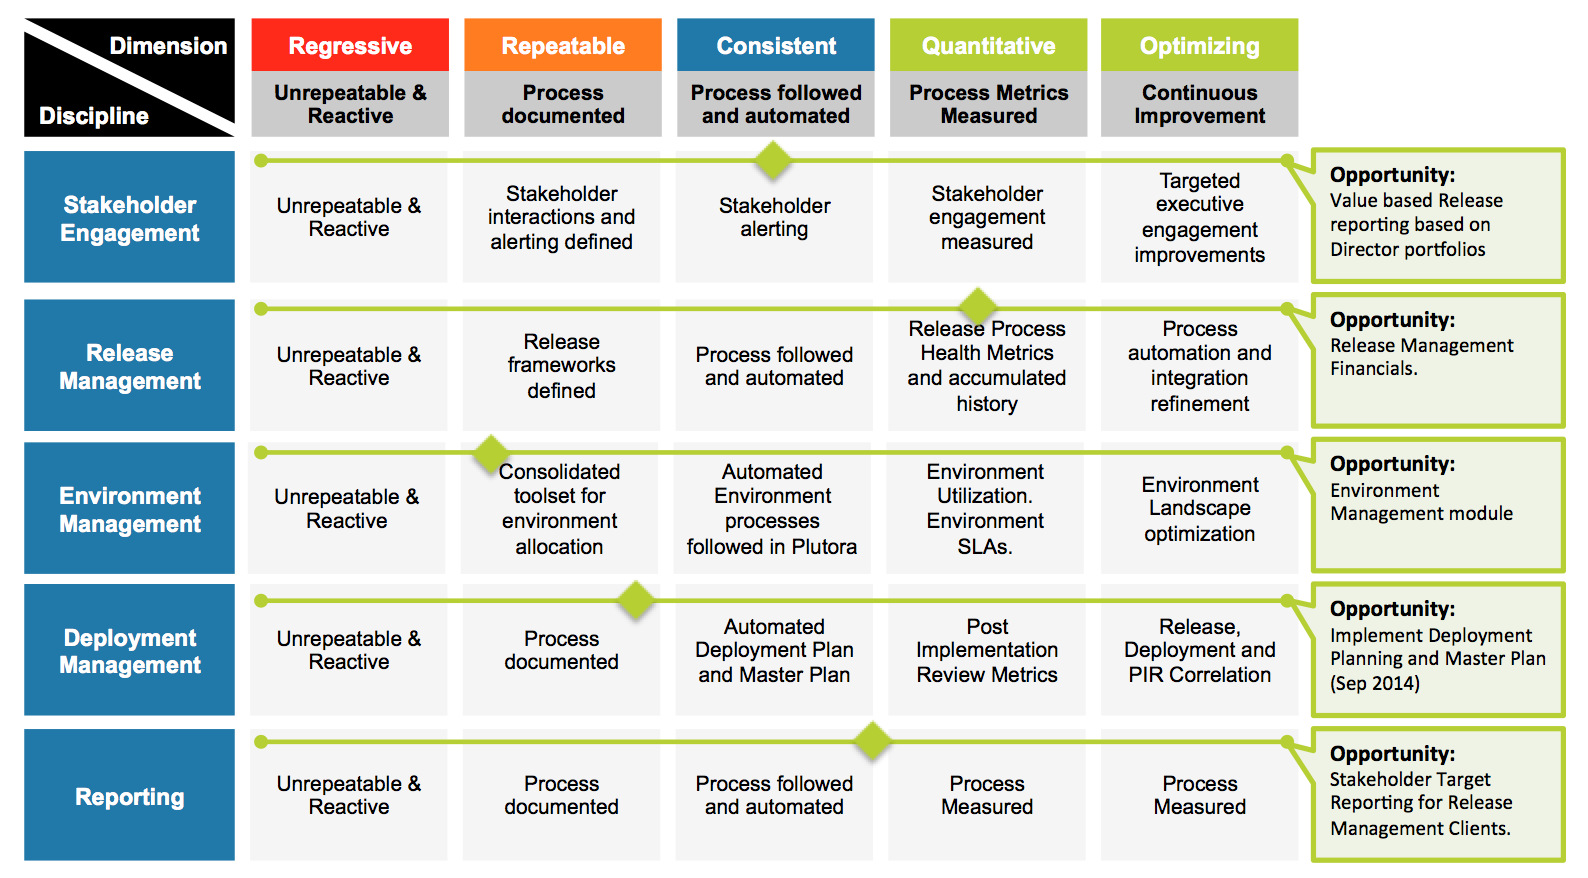 Capability Maturity Model for Release Management and Environment Mangement